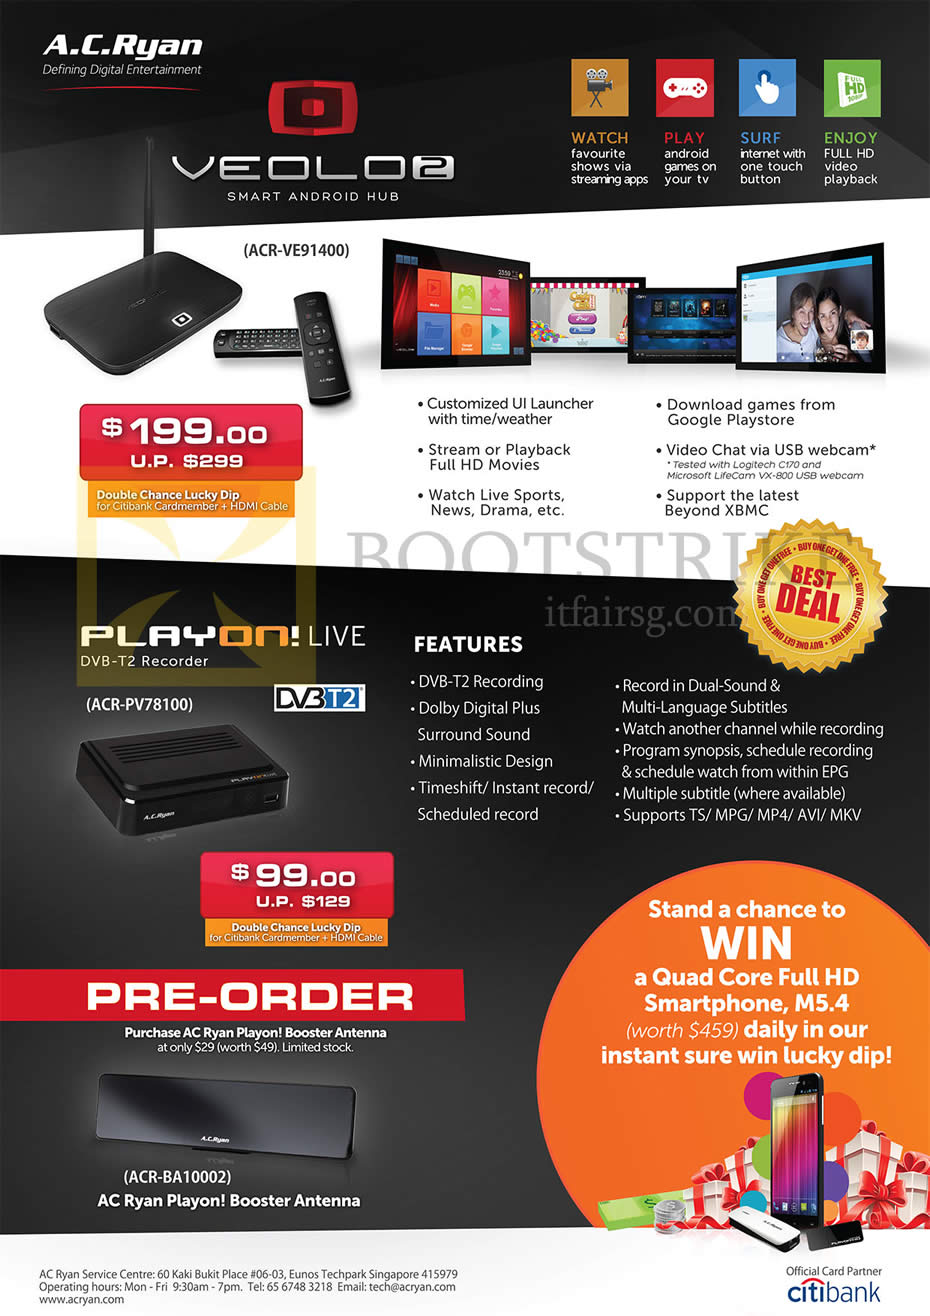 PC SHOW 2014 price list image brochure of AC Ryan Veolo 2 ACR-VE91400, Play On Live DVB-T2 DVR Recorder